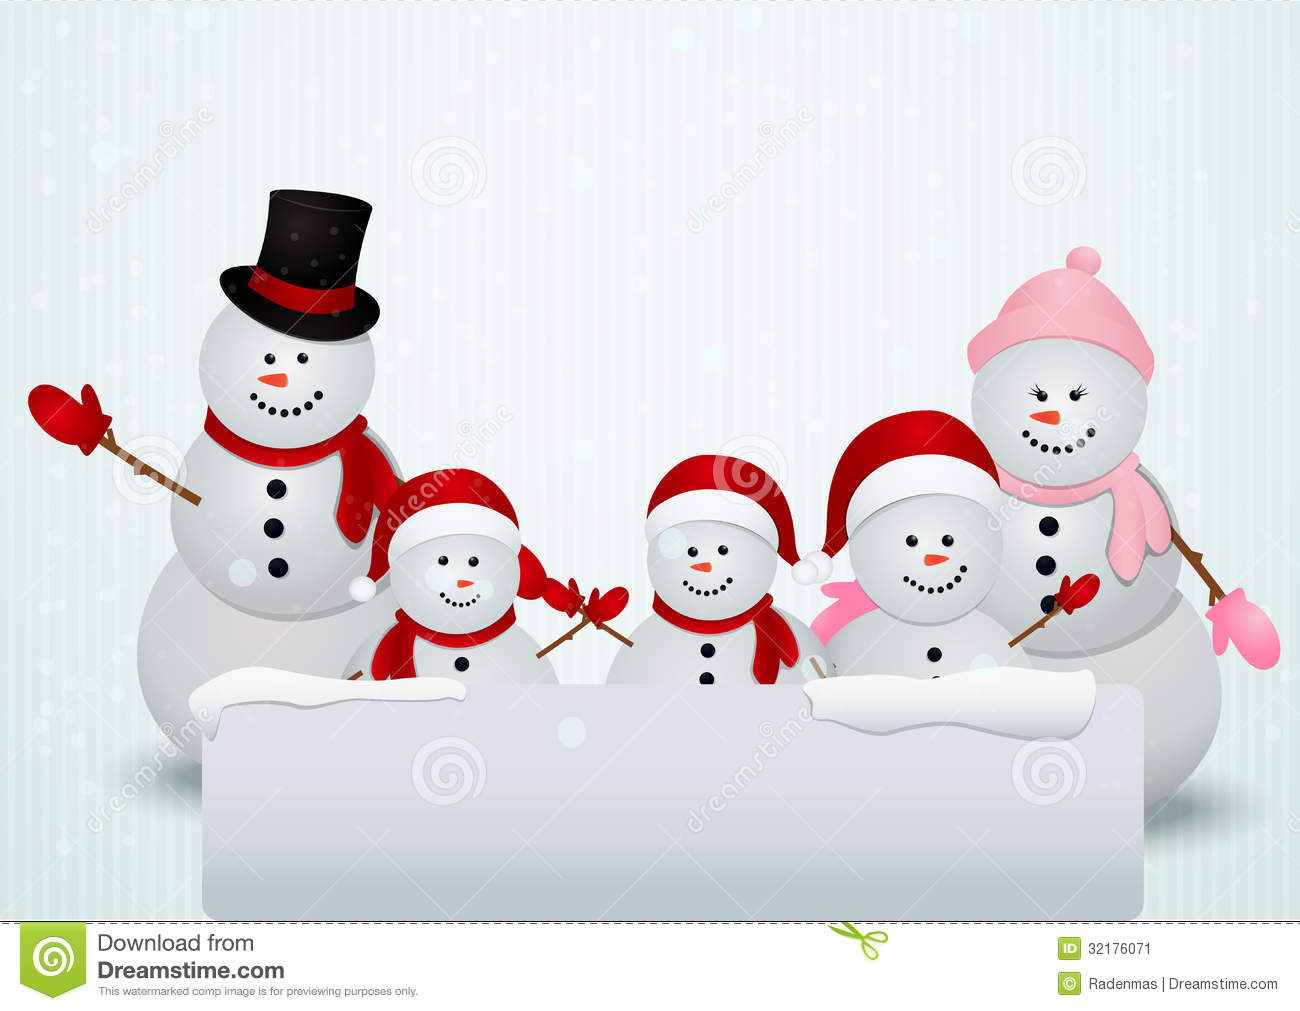 snowman family wallpaper - photo #7